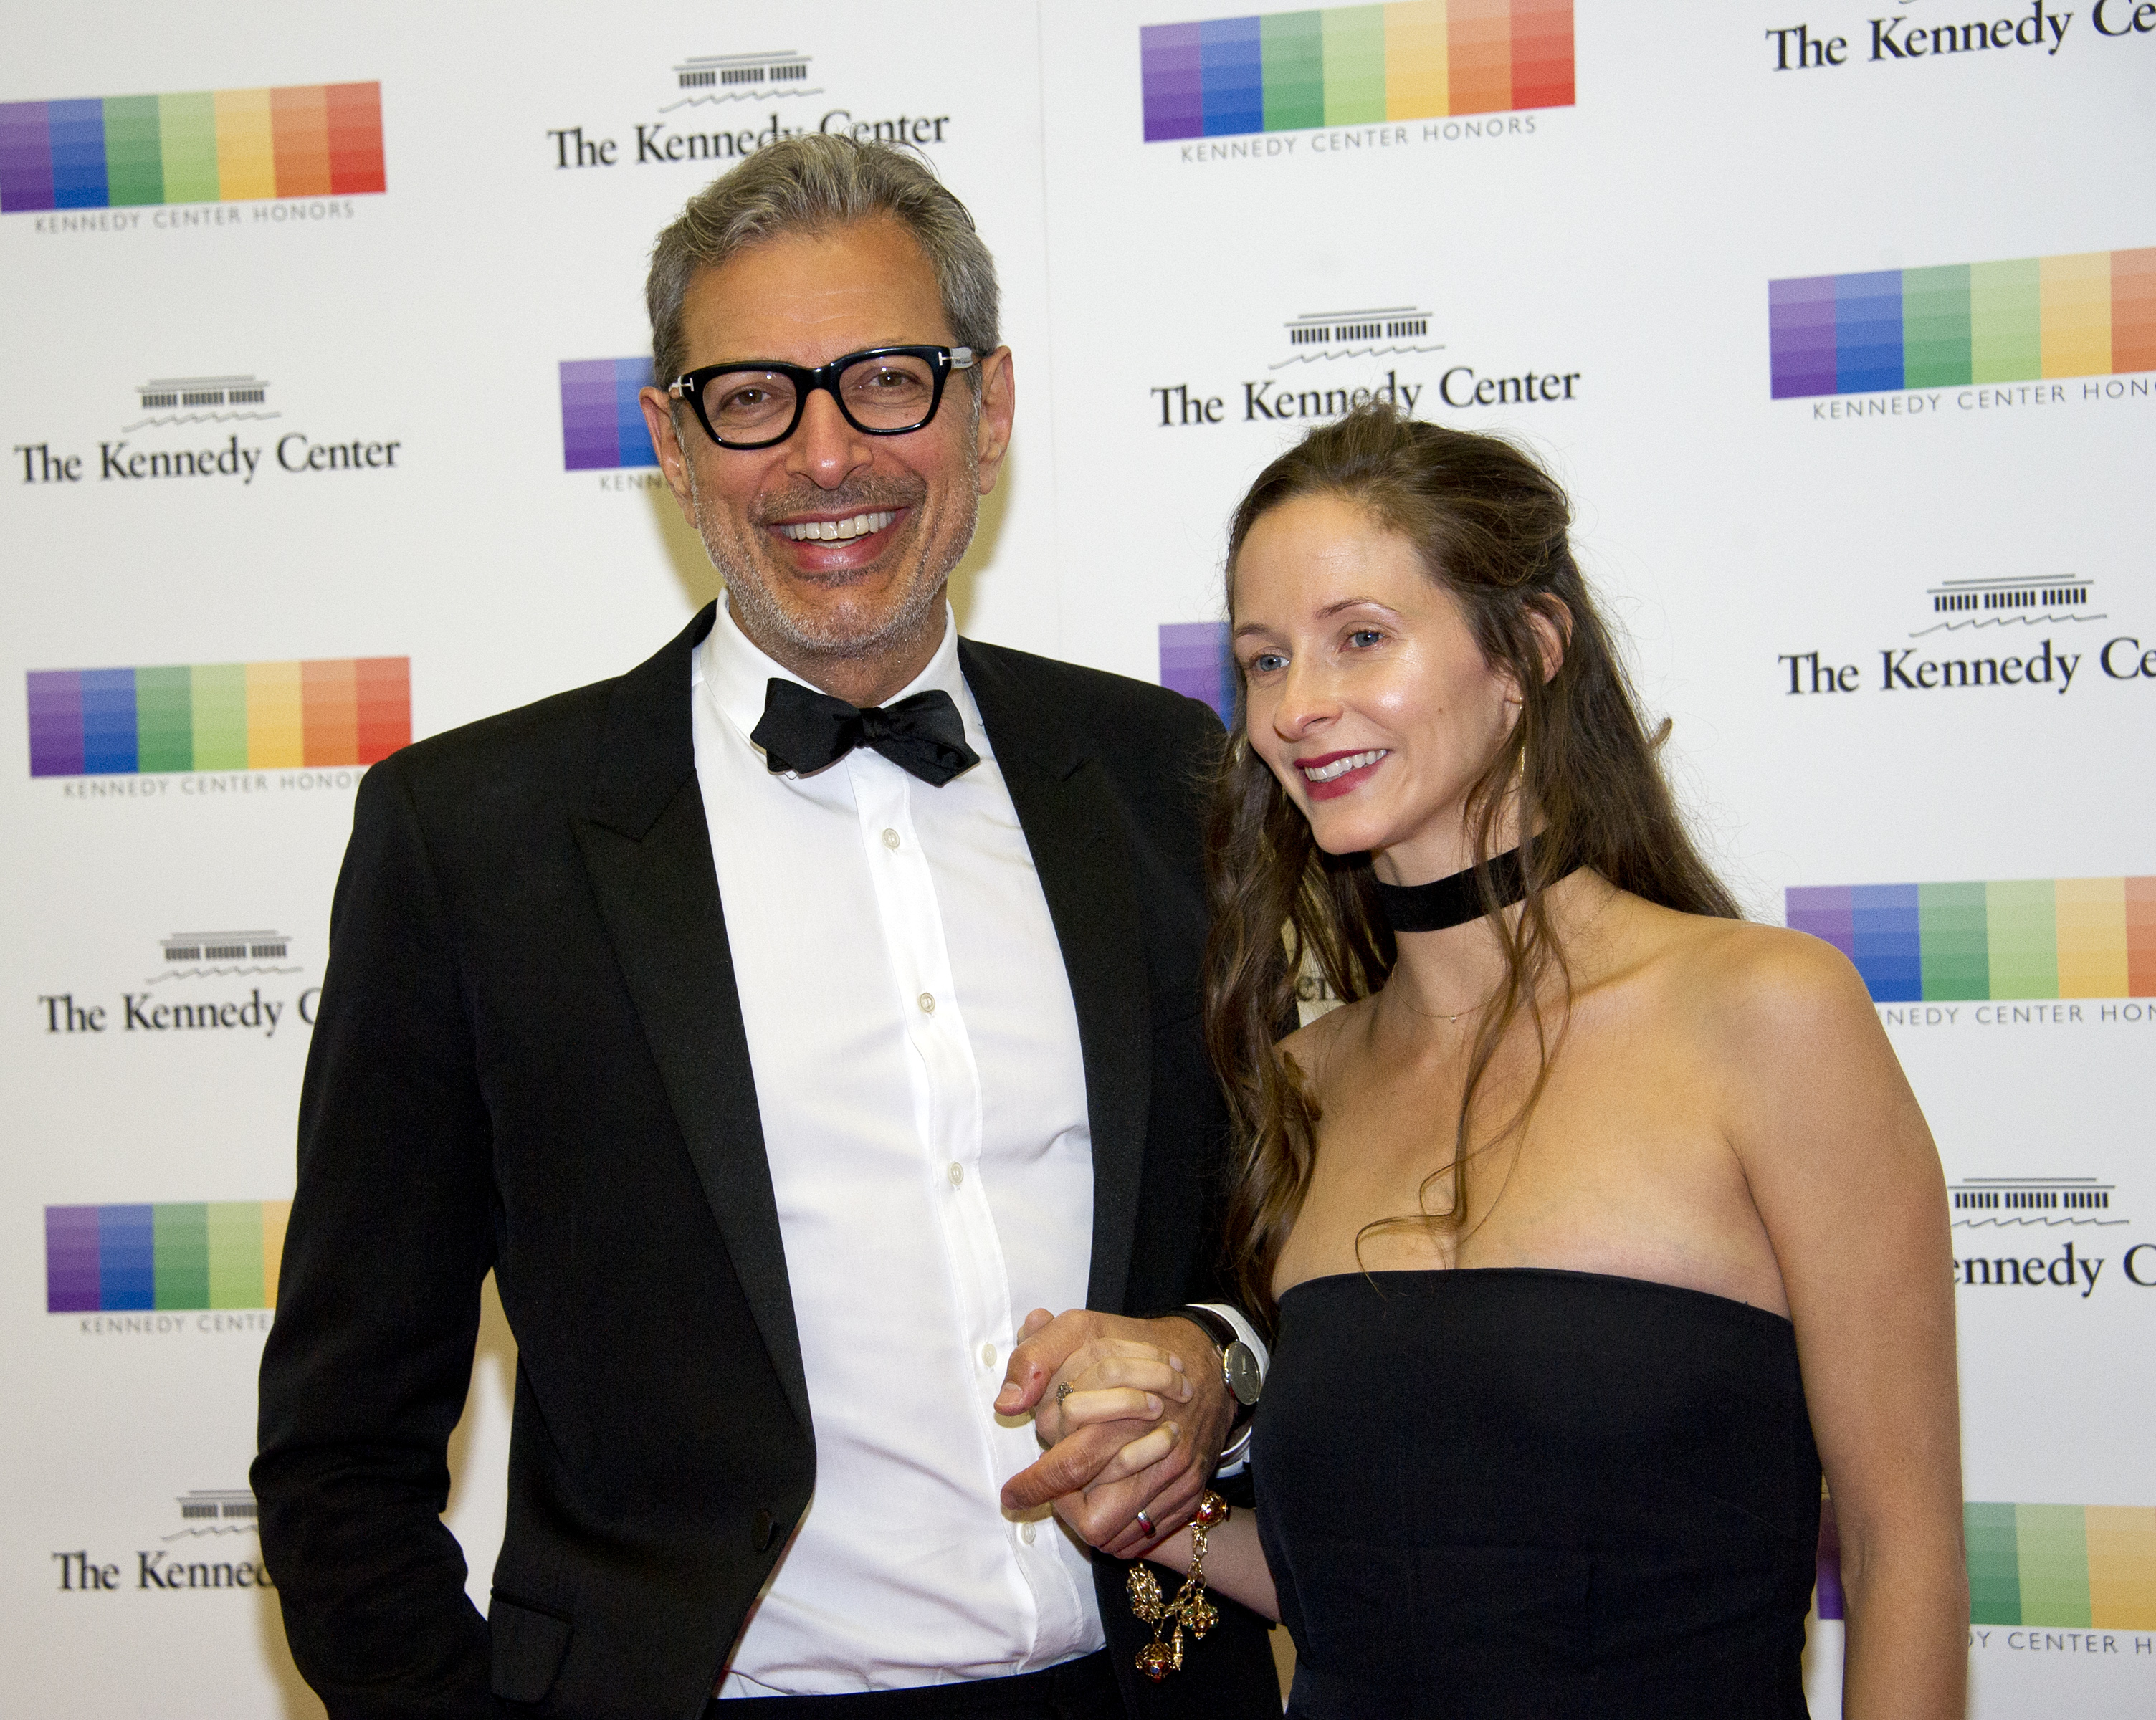 WASHINGTON, DC - DECEMBER 03:  Actor Jeff Goldblum and his wife, Emilie Livingston, arrive for the formal Artist's Dinner honoring the recipients of the 39th Annual Kennedy Center Honors hosted by United States Secretary of State John F. Kerry at the U.S. Department of State on December 3, 2016 in Washington, D.C. The 2016 honorees are: Argentine pianist Martha Argerich; rock band the Eagles; screen and stage actor Al Pacino; gospel and blues singer Mavis Staples; and musician James Taylor. (Photo by Ron Sachs - Pool /Getty Images)